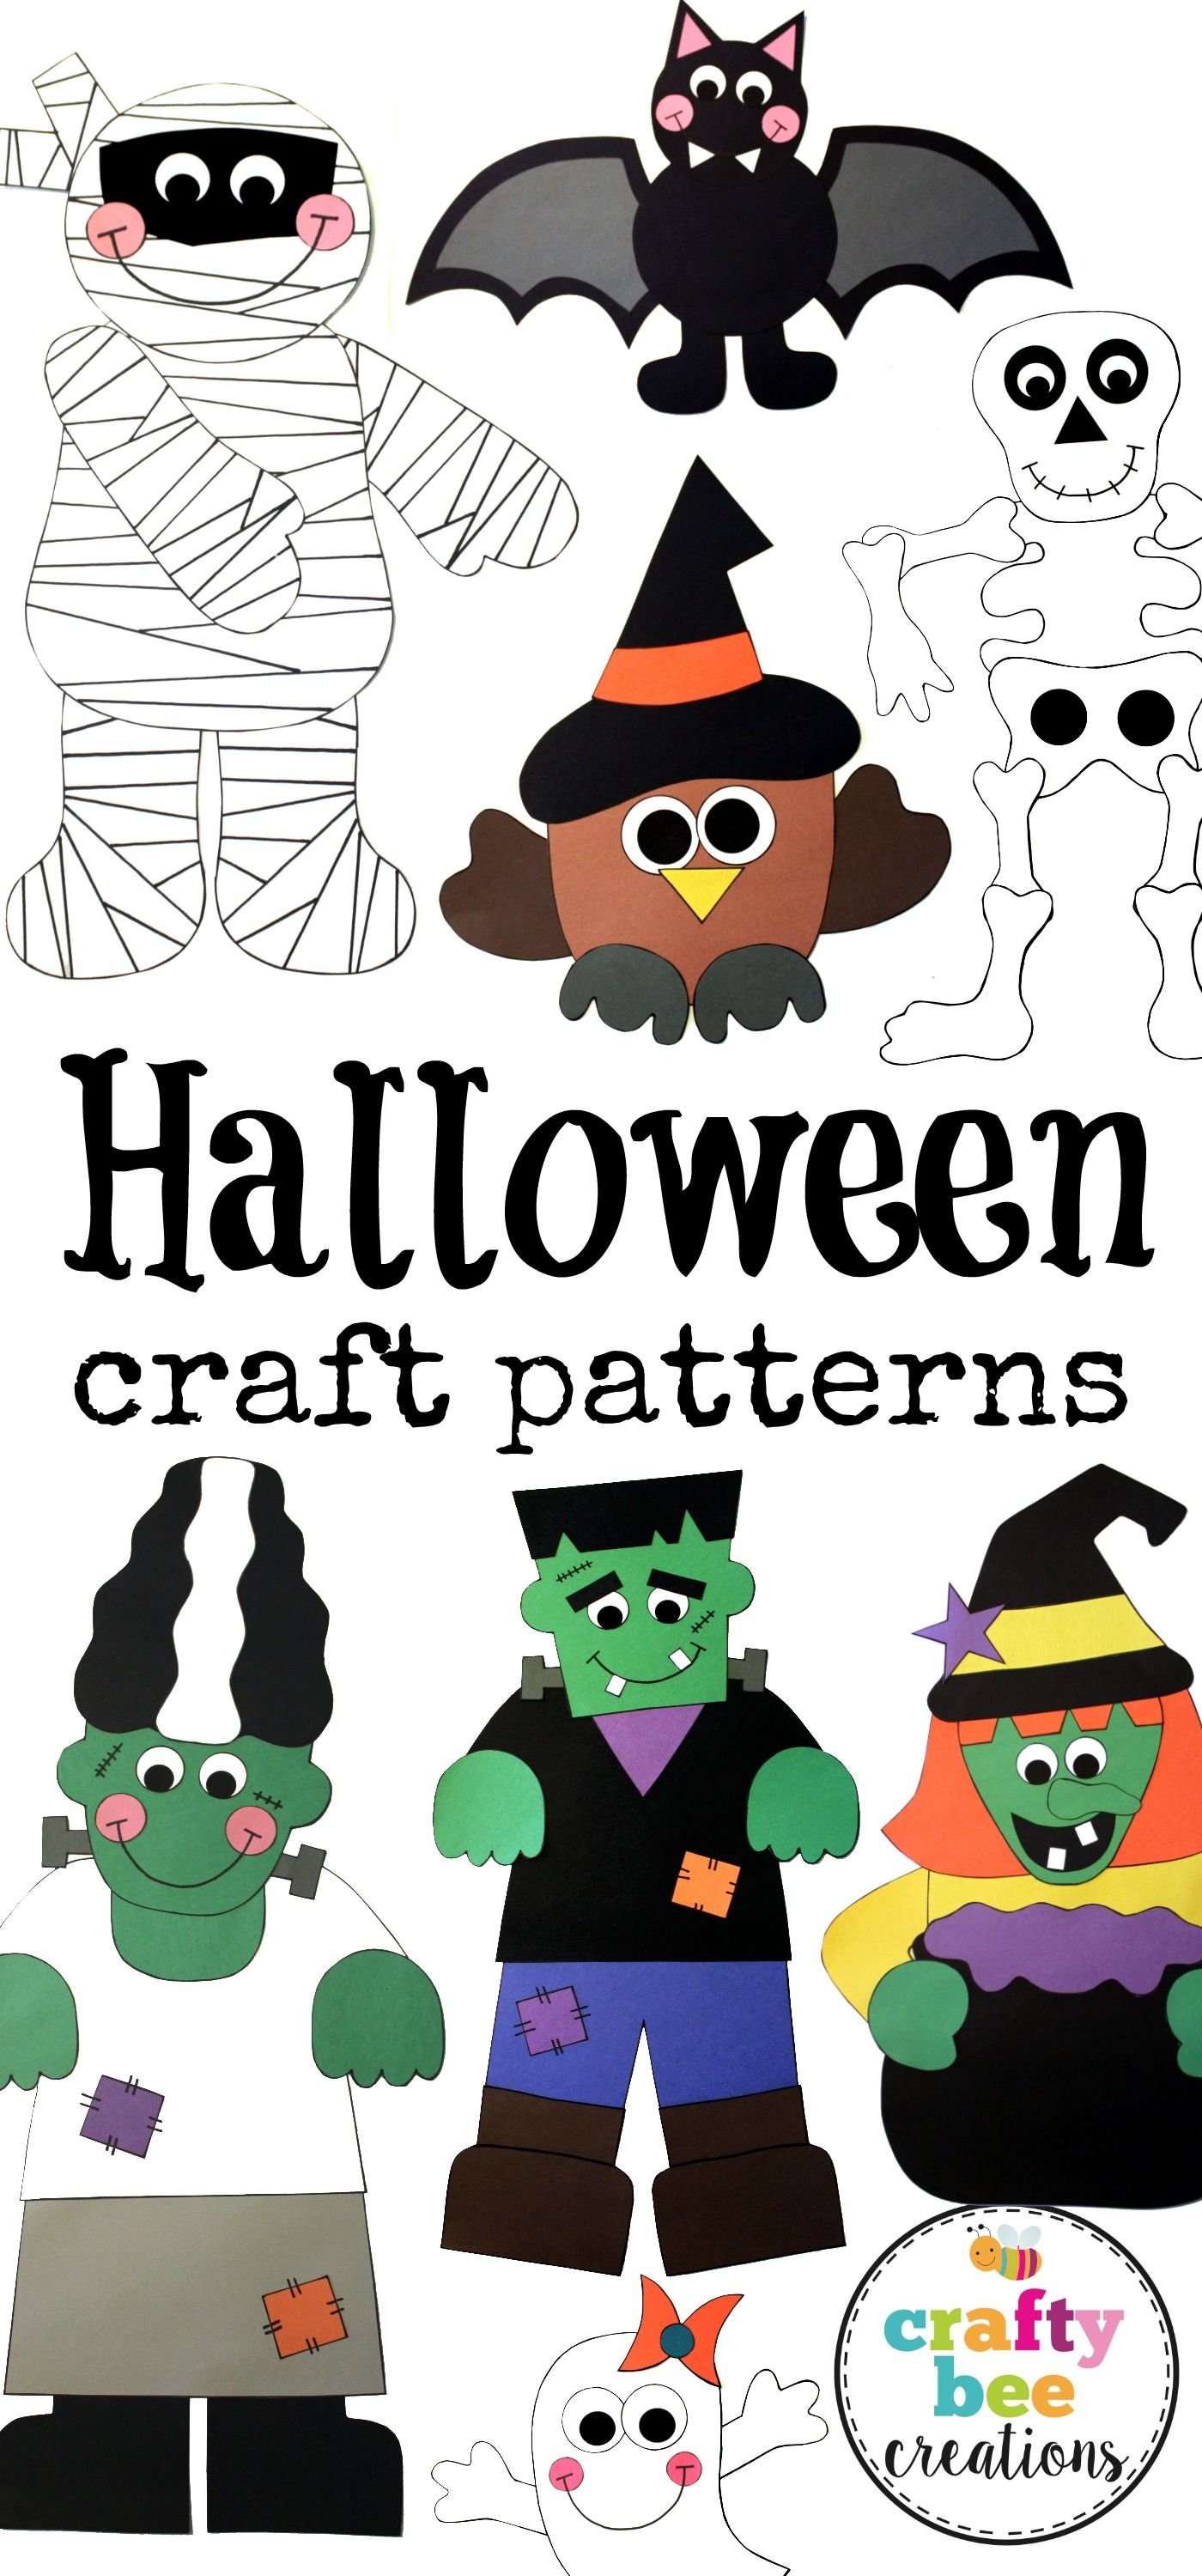 great selection of halloween craft patterns to chose from in this set lots of fun - Halloween Printable Crafts For Kids 2